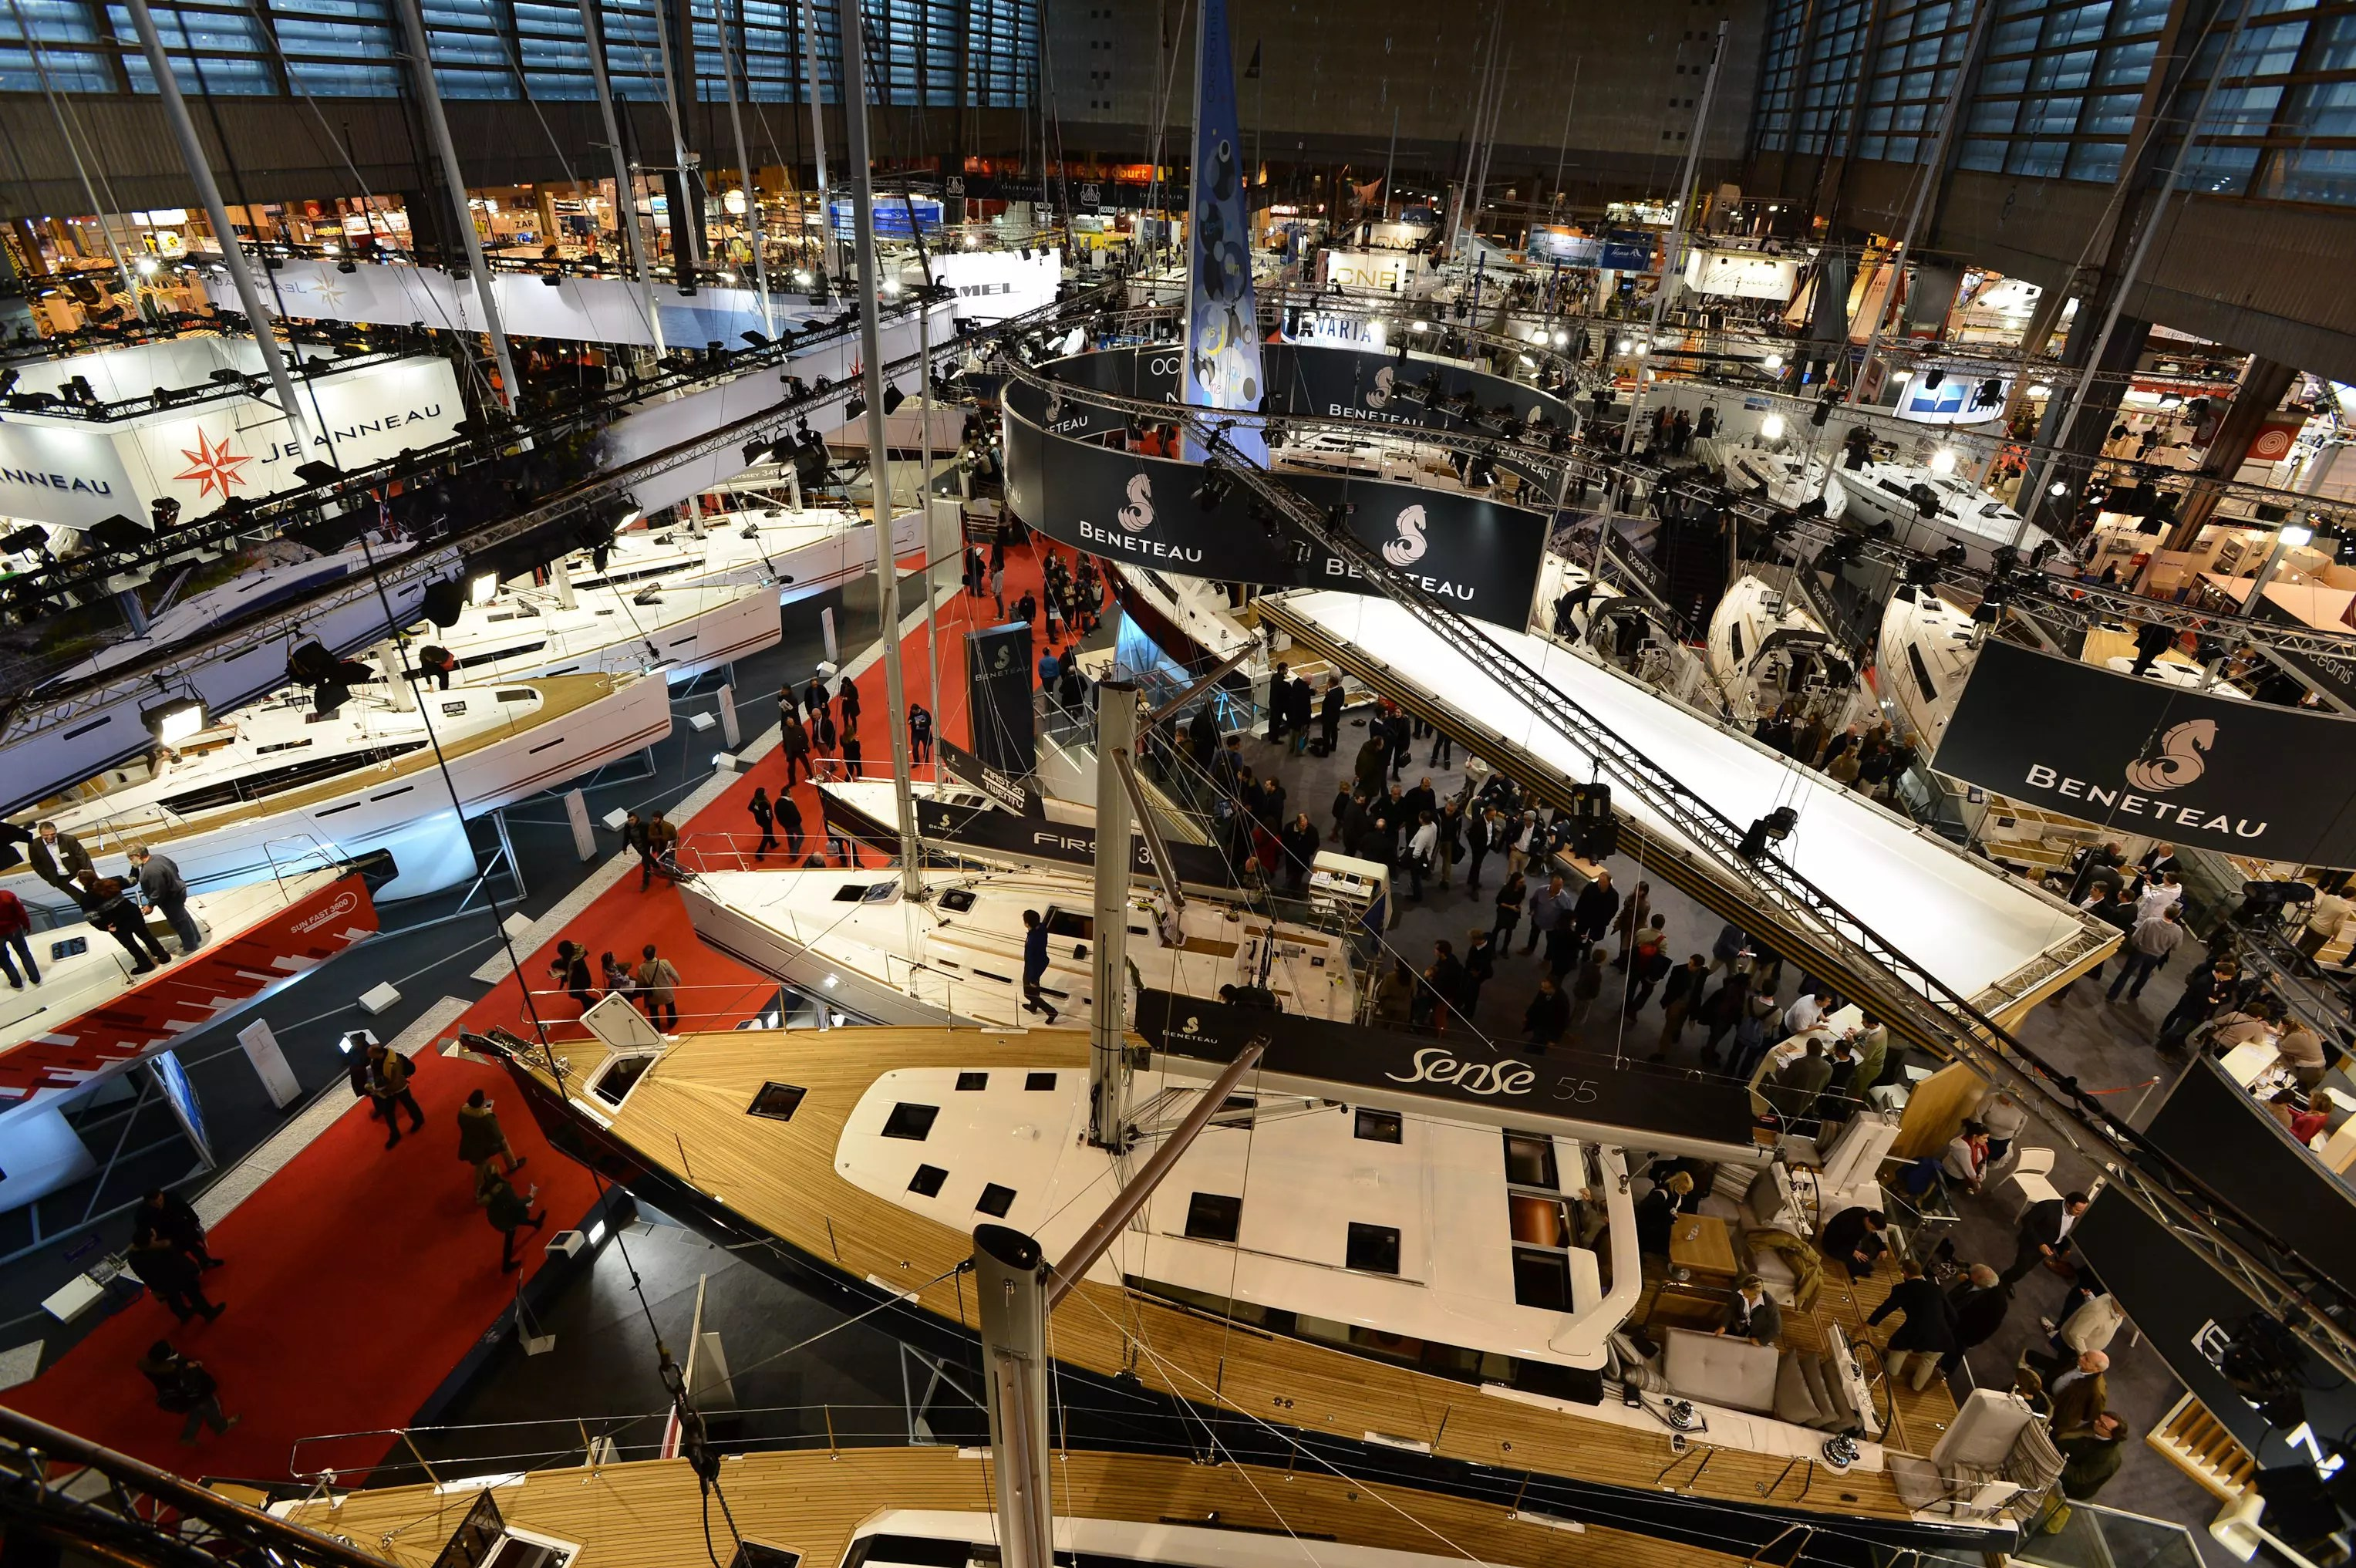 Salon Nautic Paris Salon Nautique De Paris 2018 Les Dates De La Prochaine